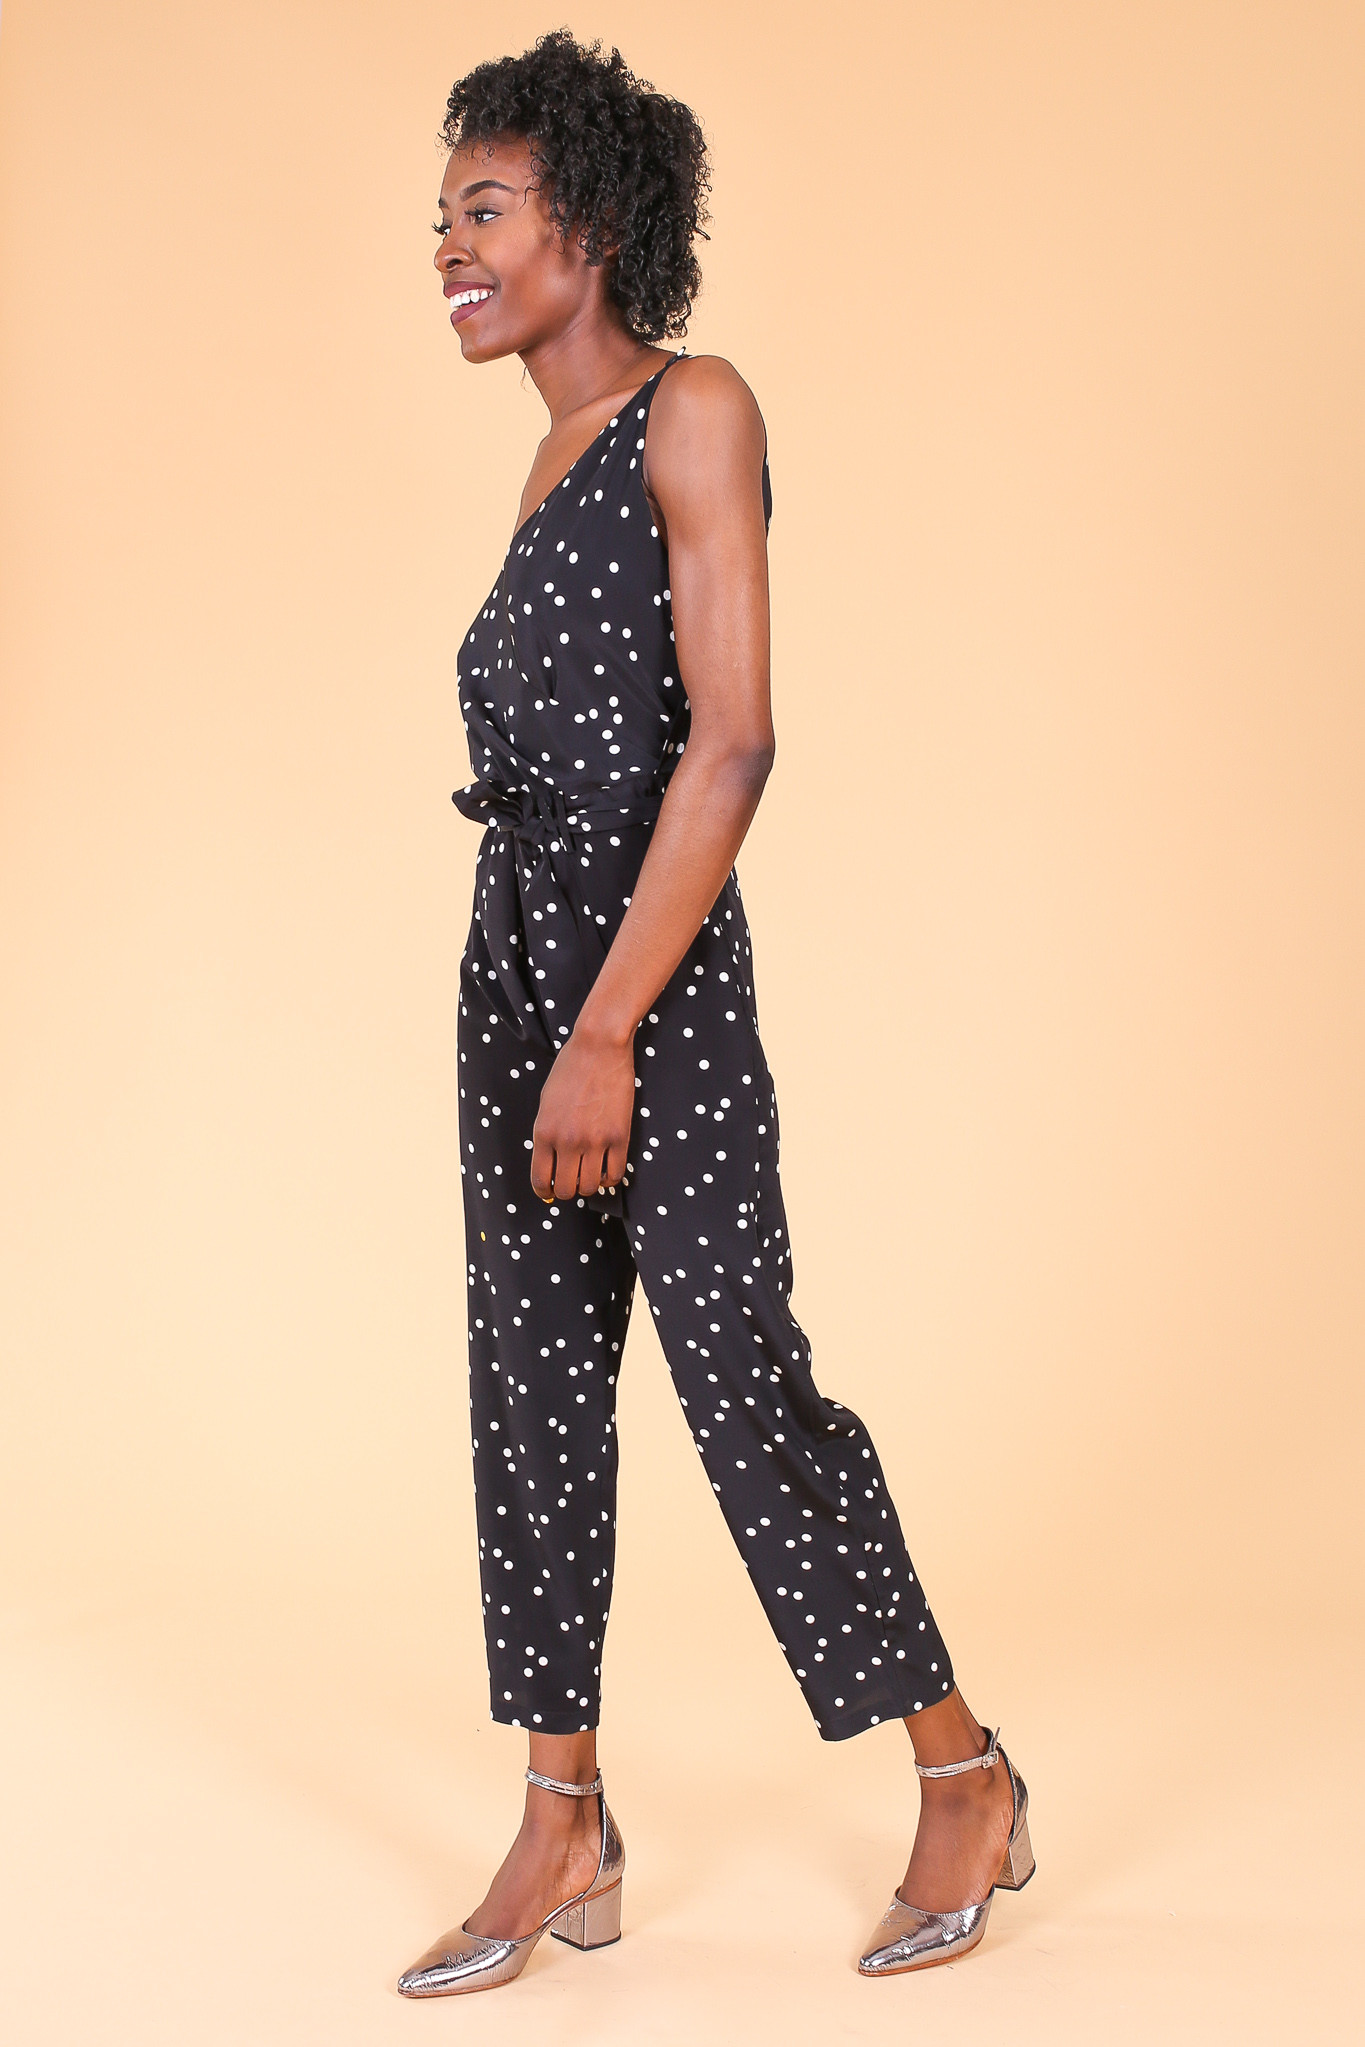 36 Items of black and white polka dot jumpsuit. Quick Shop. Holiday Polka Dots Spaghetti Shirred Jumpsuit. $ Quick Shop. Lapel Chiffon Bow Casual Polka Dots Jumpsuit. $ Black-white Polka Dots Holiday Pleated Halter Swing Paneled Midi Dress. $ Quick Shop.